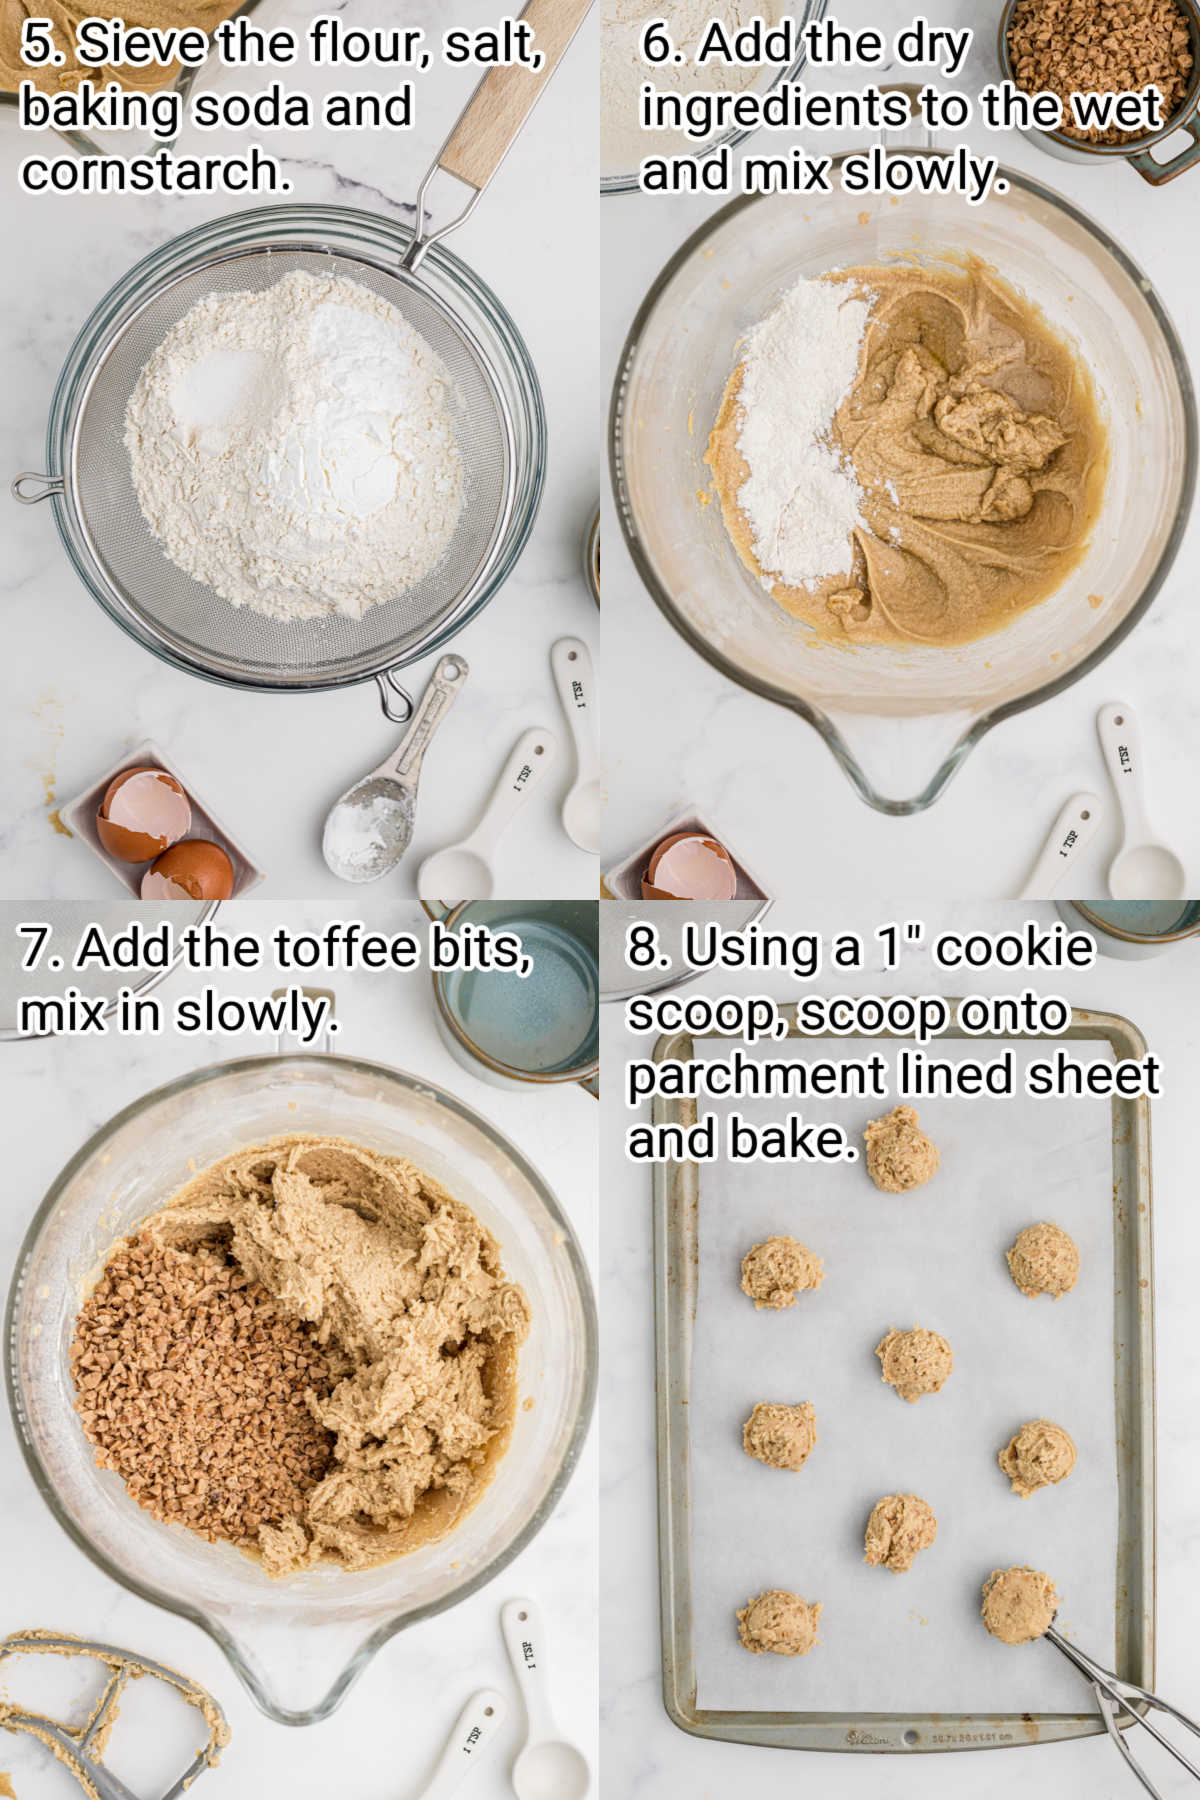 4 images showing step by step how to make butter crunch cookies